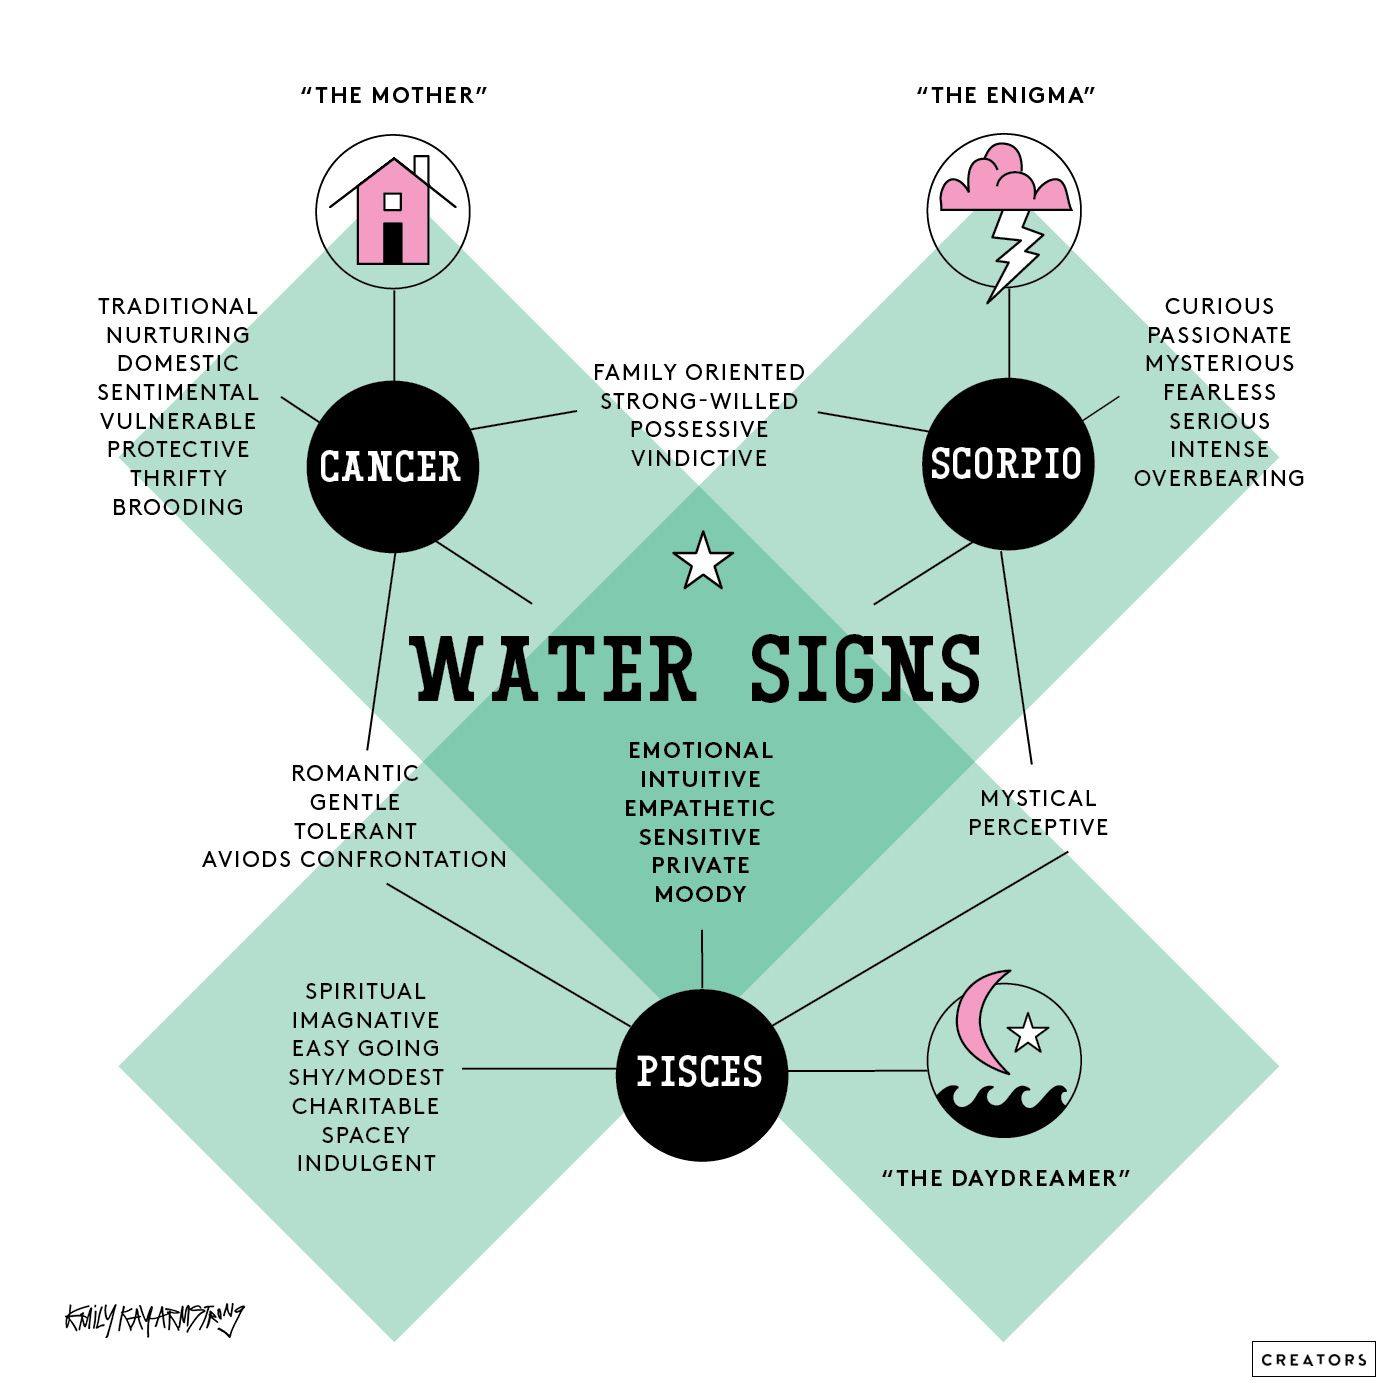 Discover more about your sign with these genius astrology charts discover more about your sign with these genius astrology charts nvjuhfo Image collections